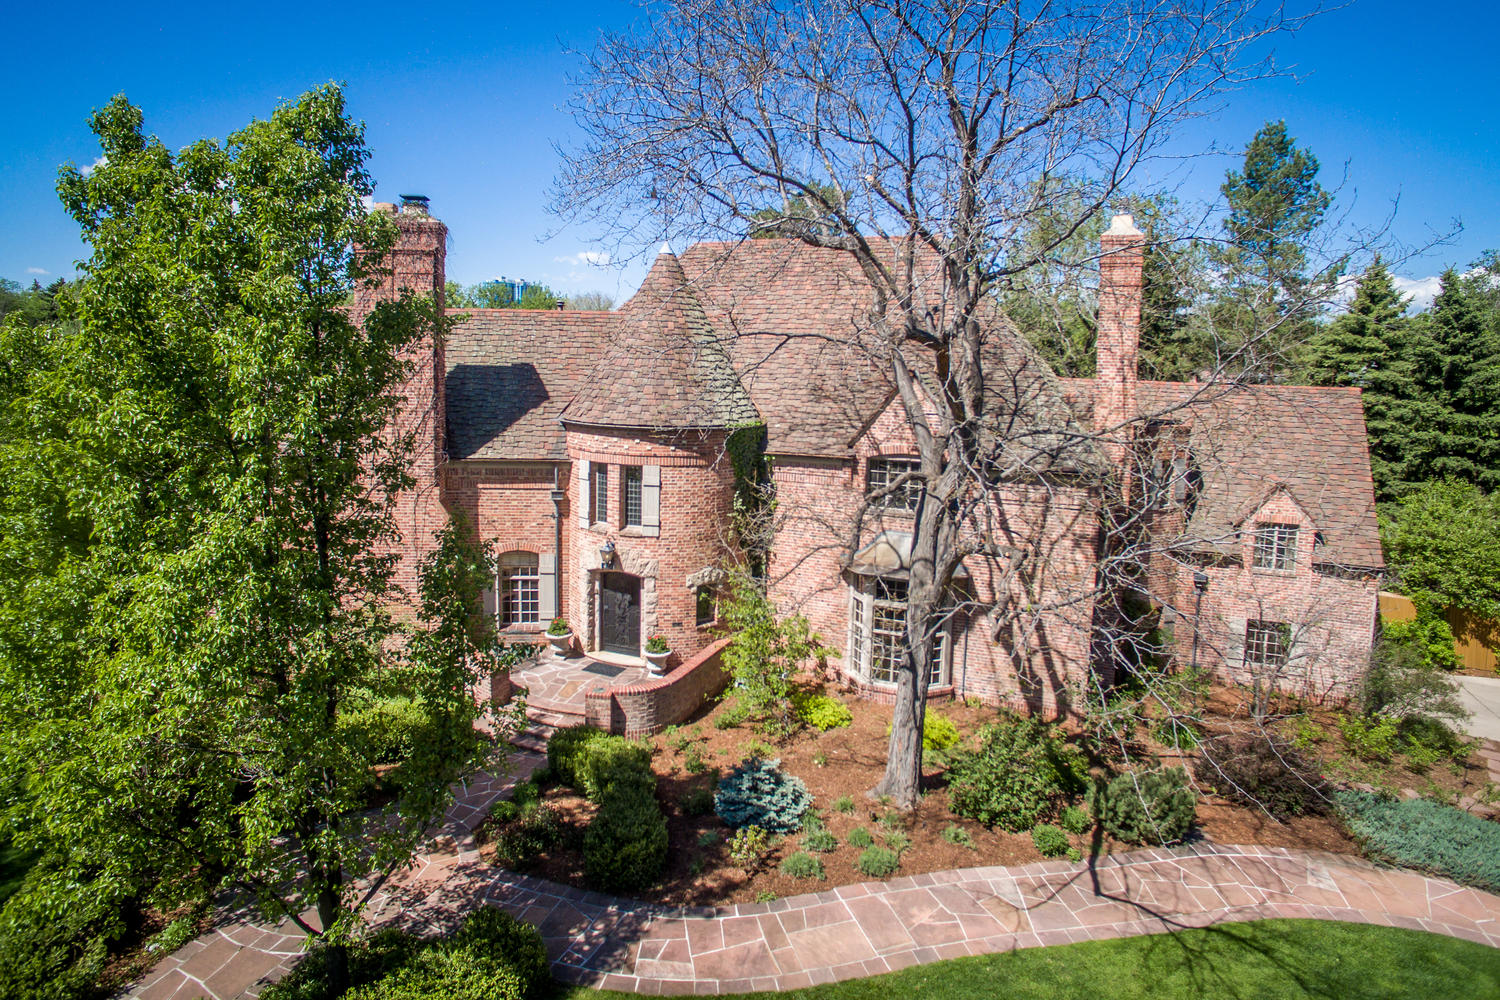 Single Family Home for Active at Very Special Tudor Located in Heart of Country Club Historic Neighborhood 401 Race Street Denver, 80206 United States